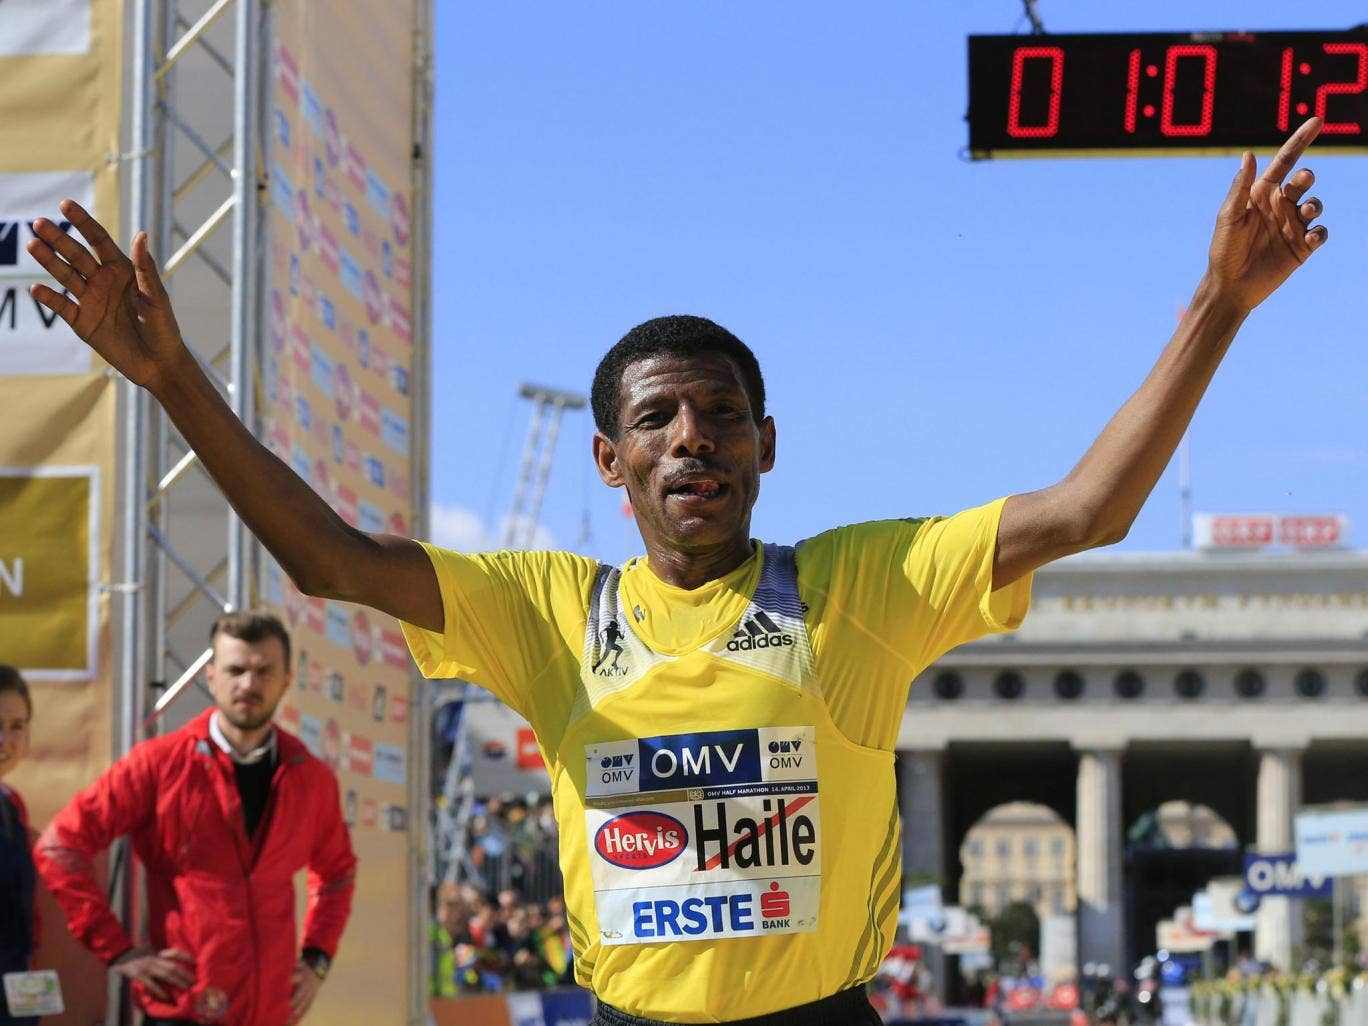 Haile Gebrselassie will set the pace at the London Marathon